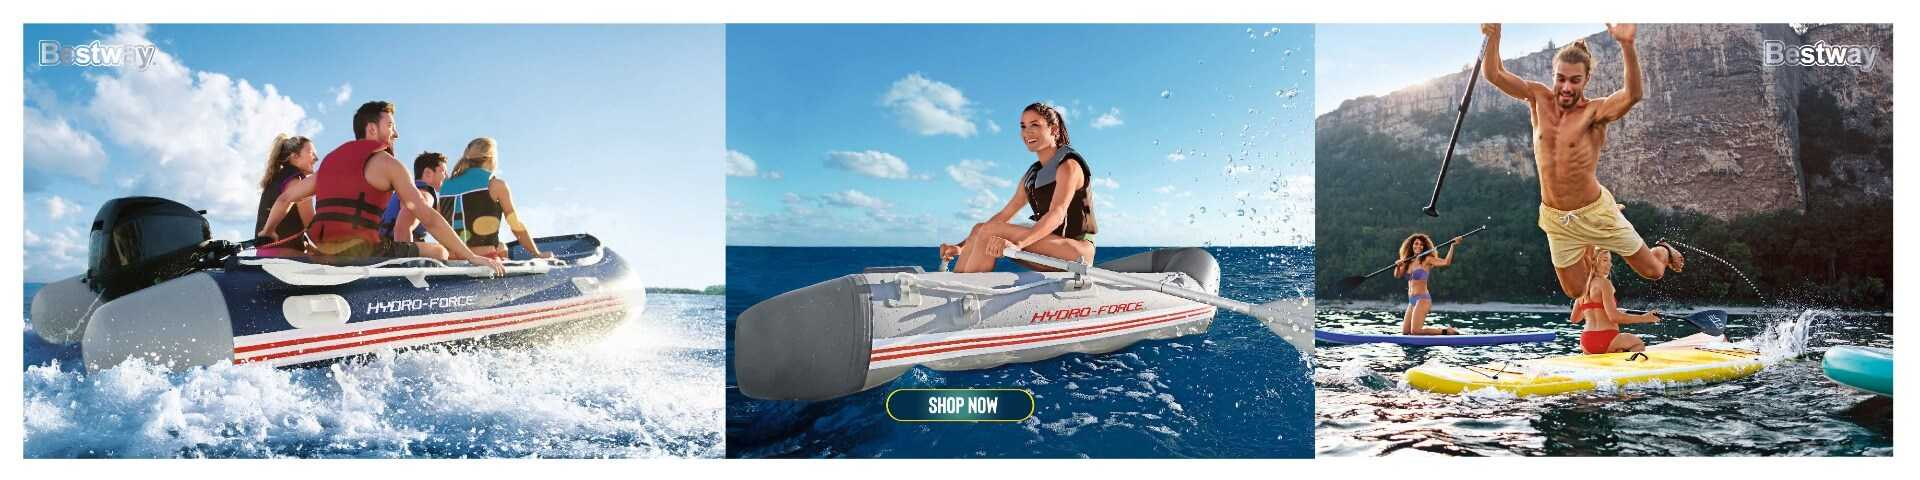 Bestway Battle Bomber Raft - Color Land Toys